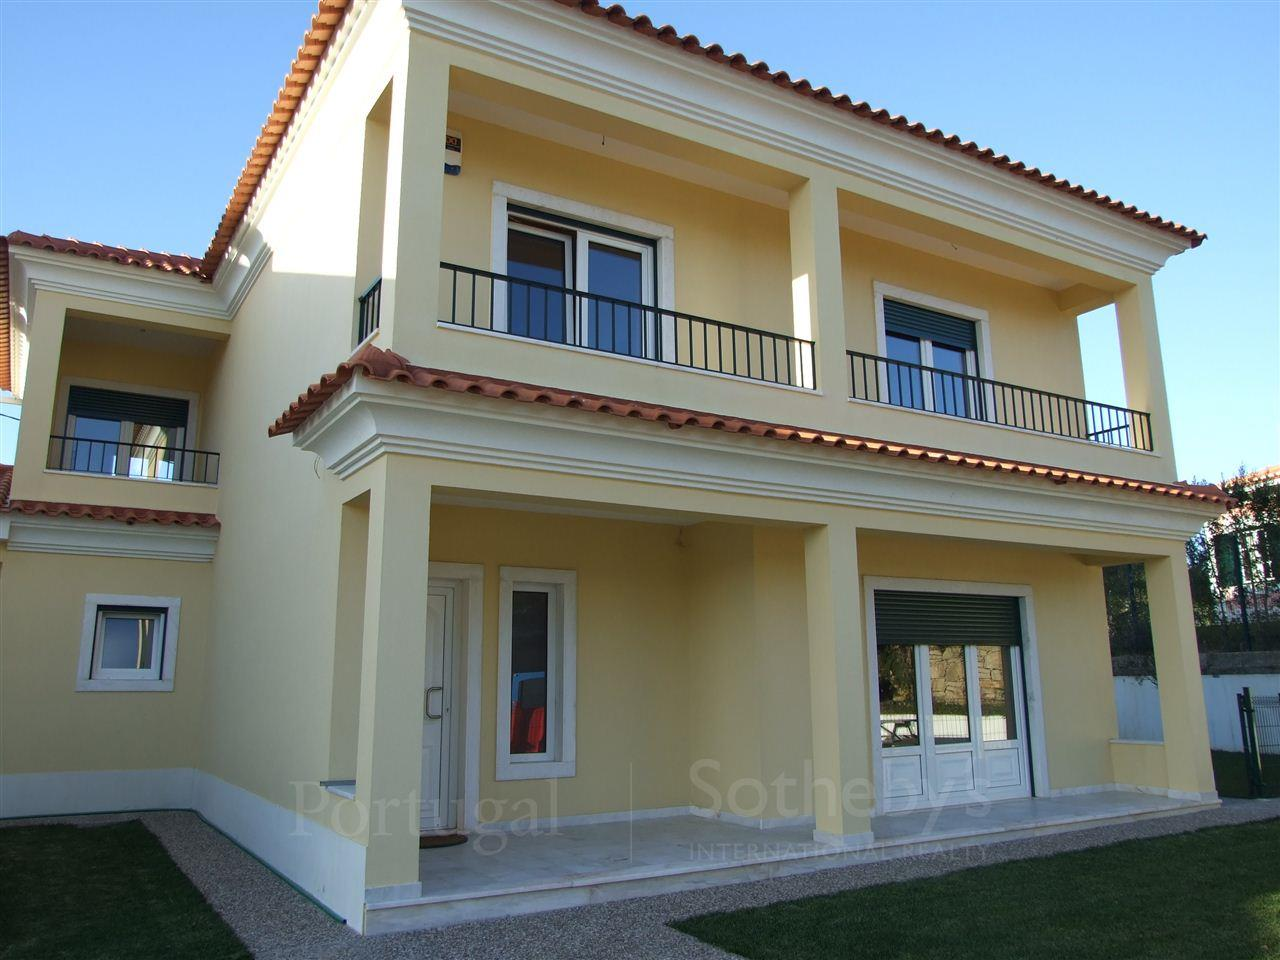 Single Family Home for Sale at House, 5 bedrooms, for Sale Sintra, Lisboa, 2710-121 Portugal